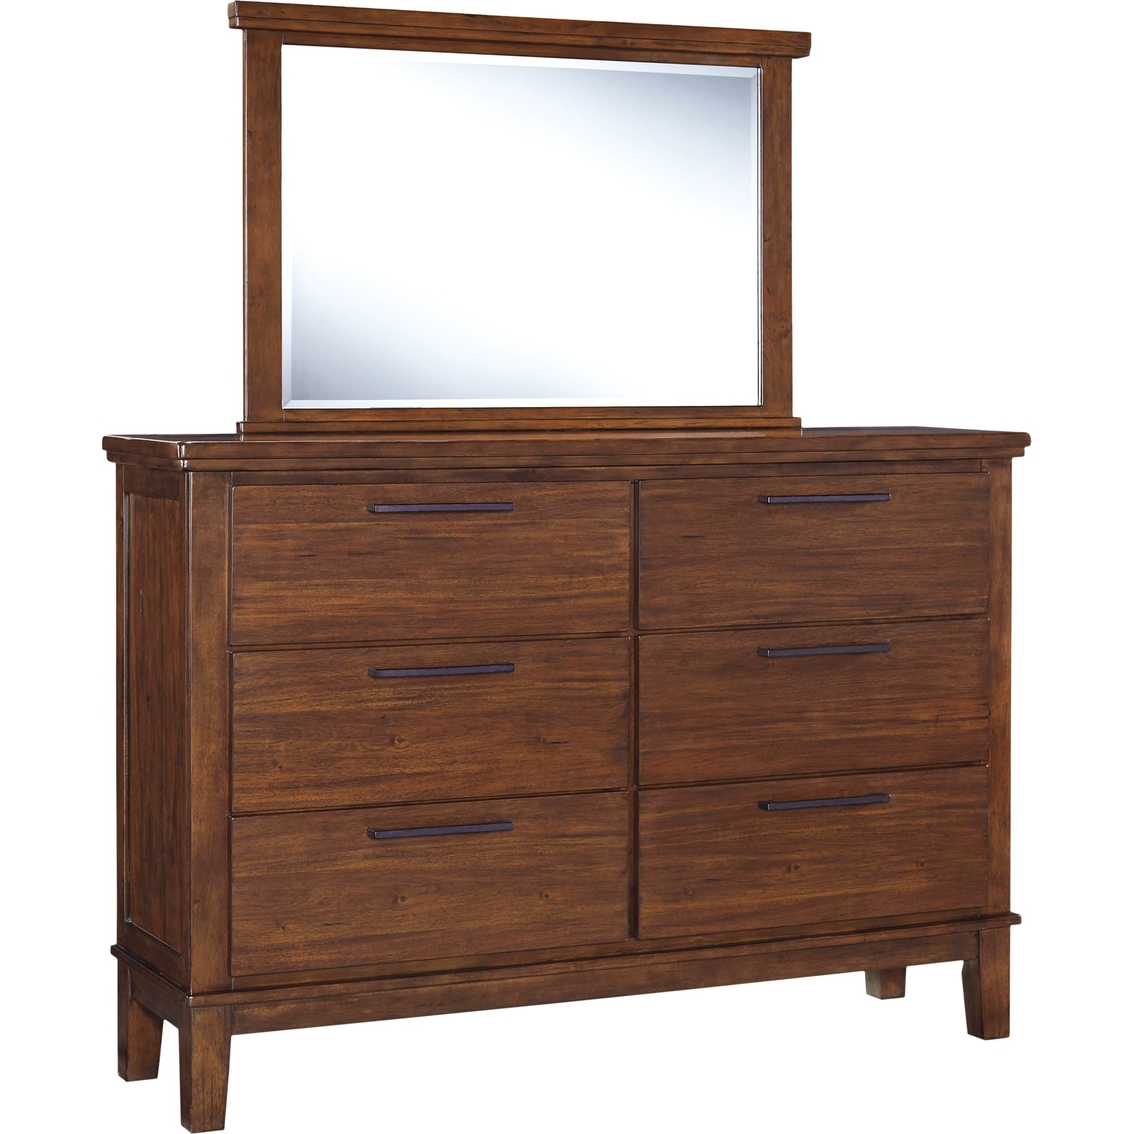 Signature design by ashley ralene dresser and mirror set dressers home appliances shop for Ashley furniture ralene bedroom set